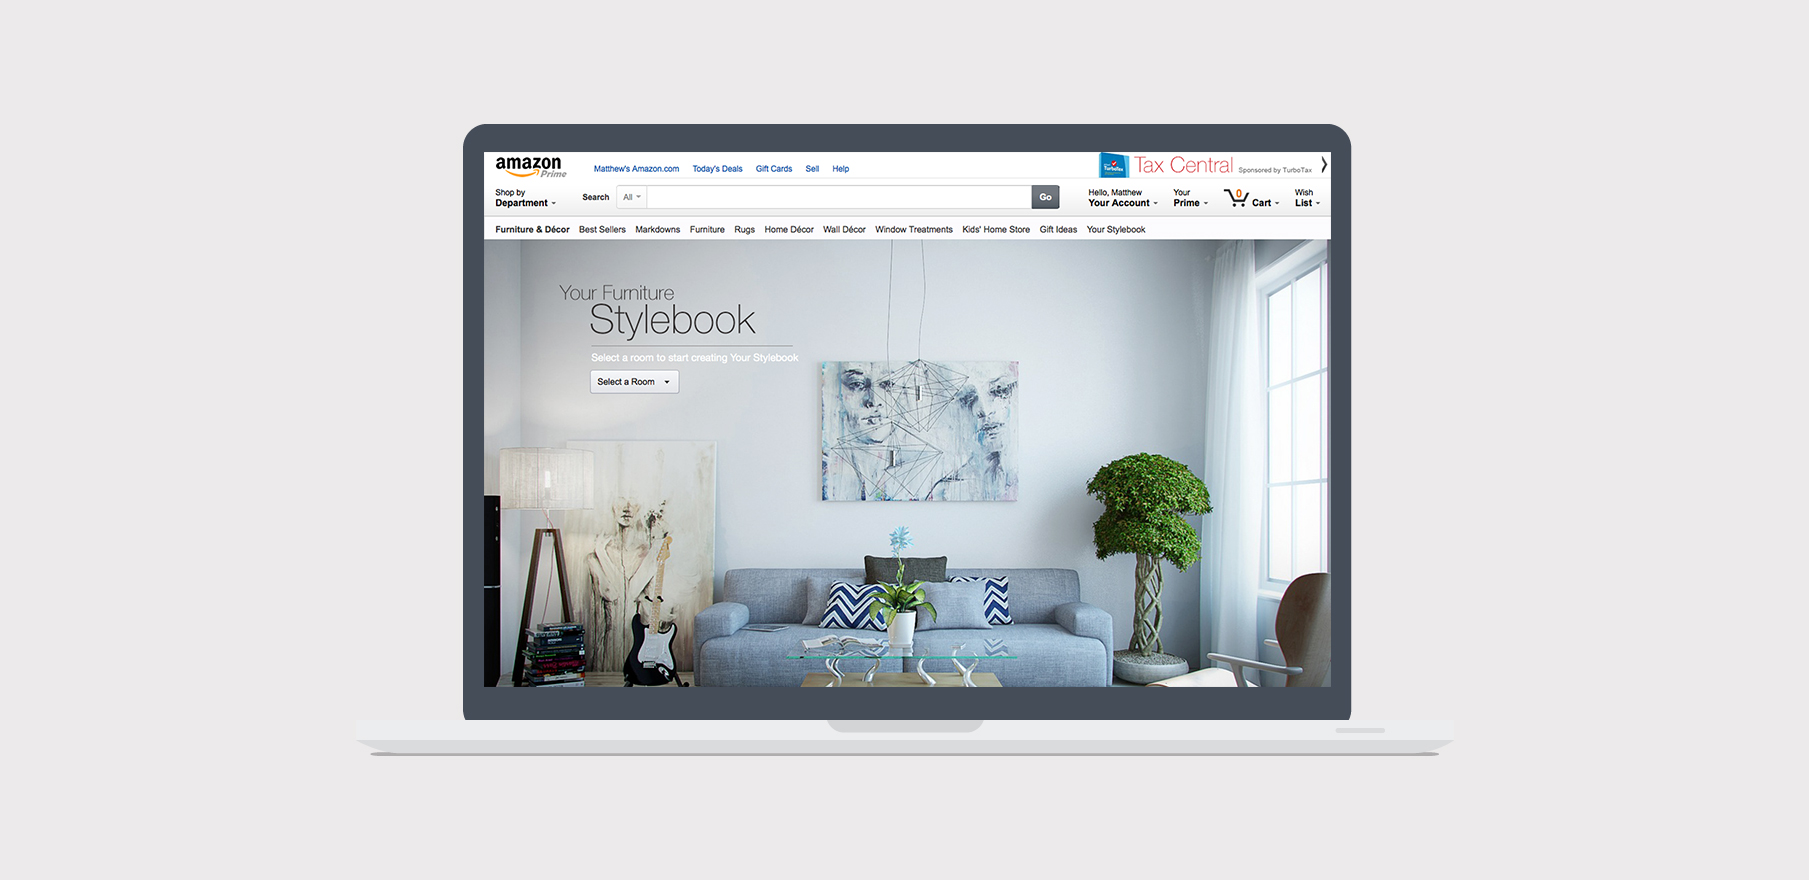 furniture style book - Creating a furniture shopping experience based on style preferences and recommendations.